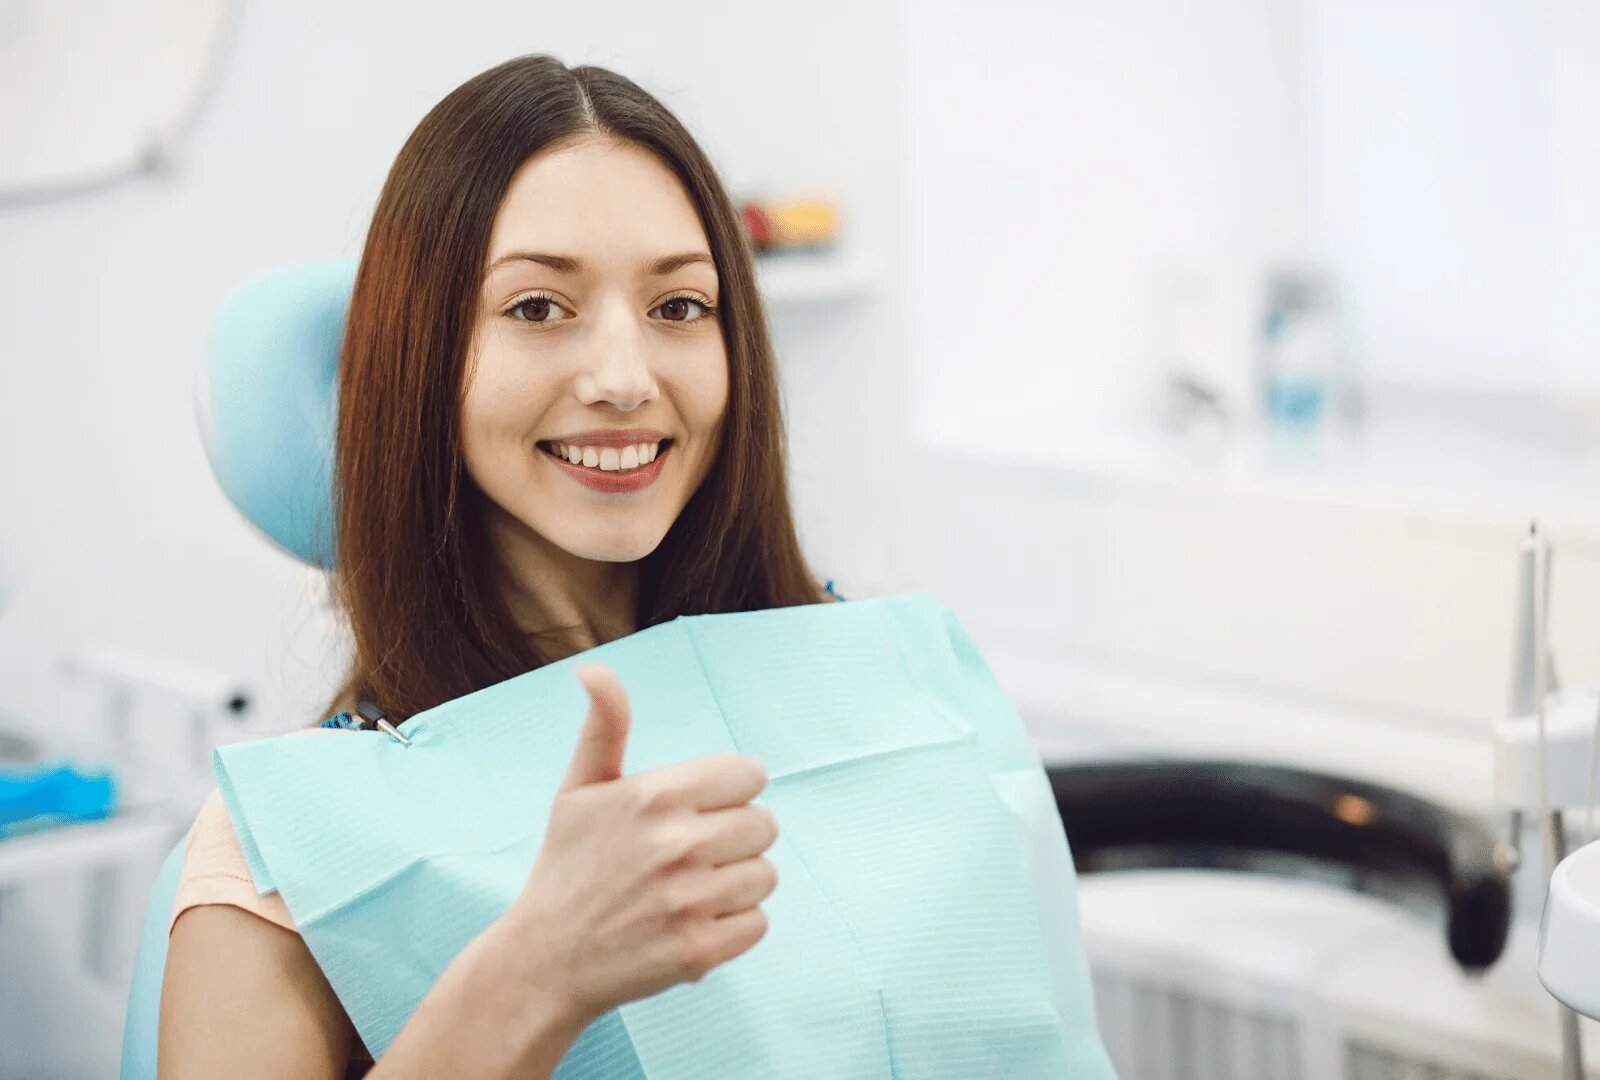 Female patient sitting down smiling at the camera giving a thumbs up signal